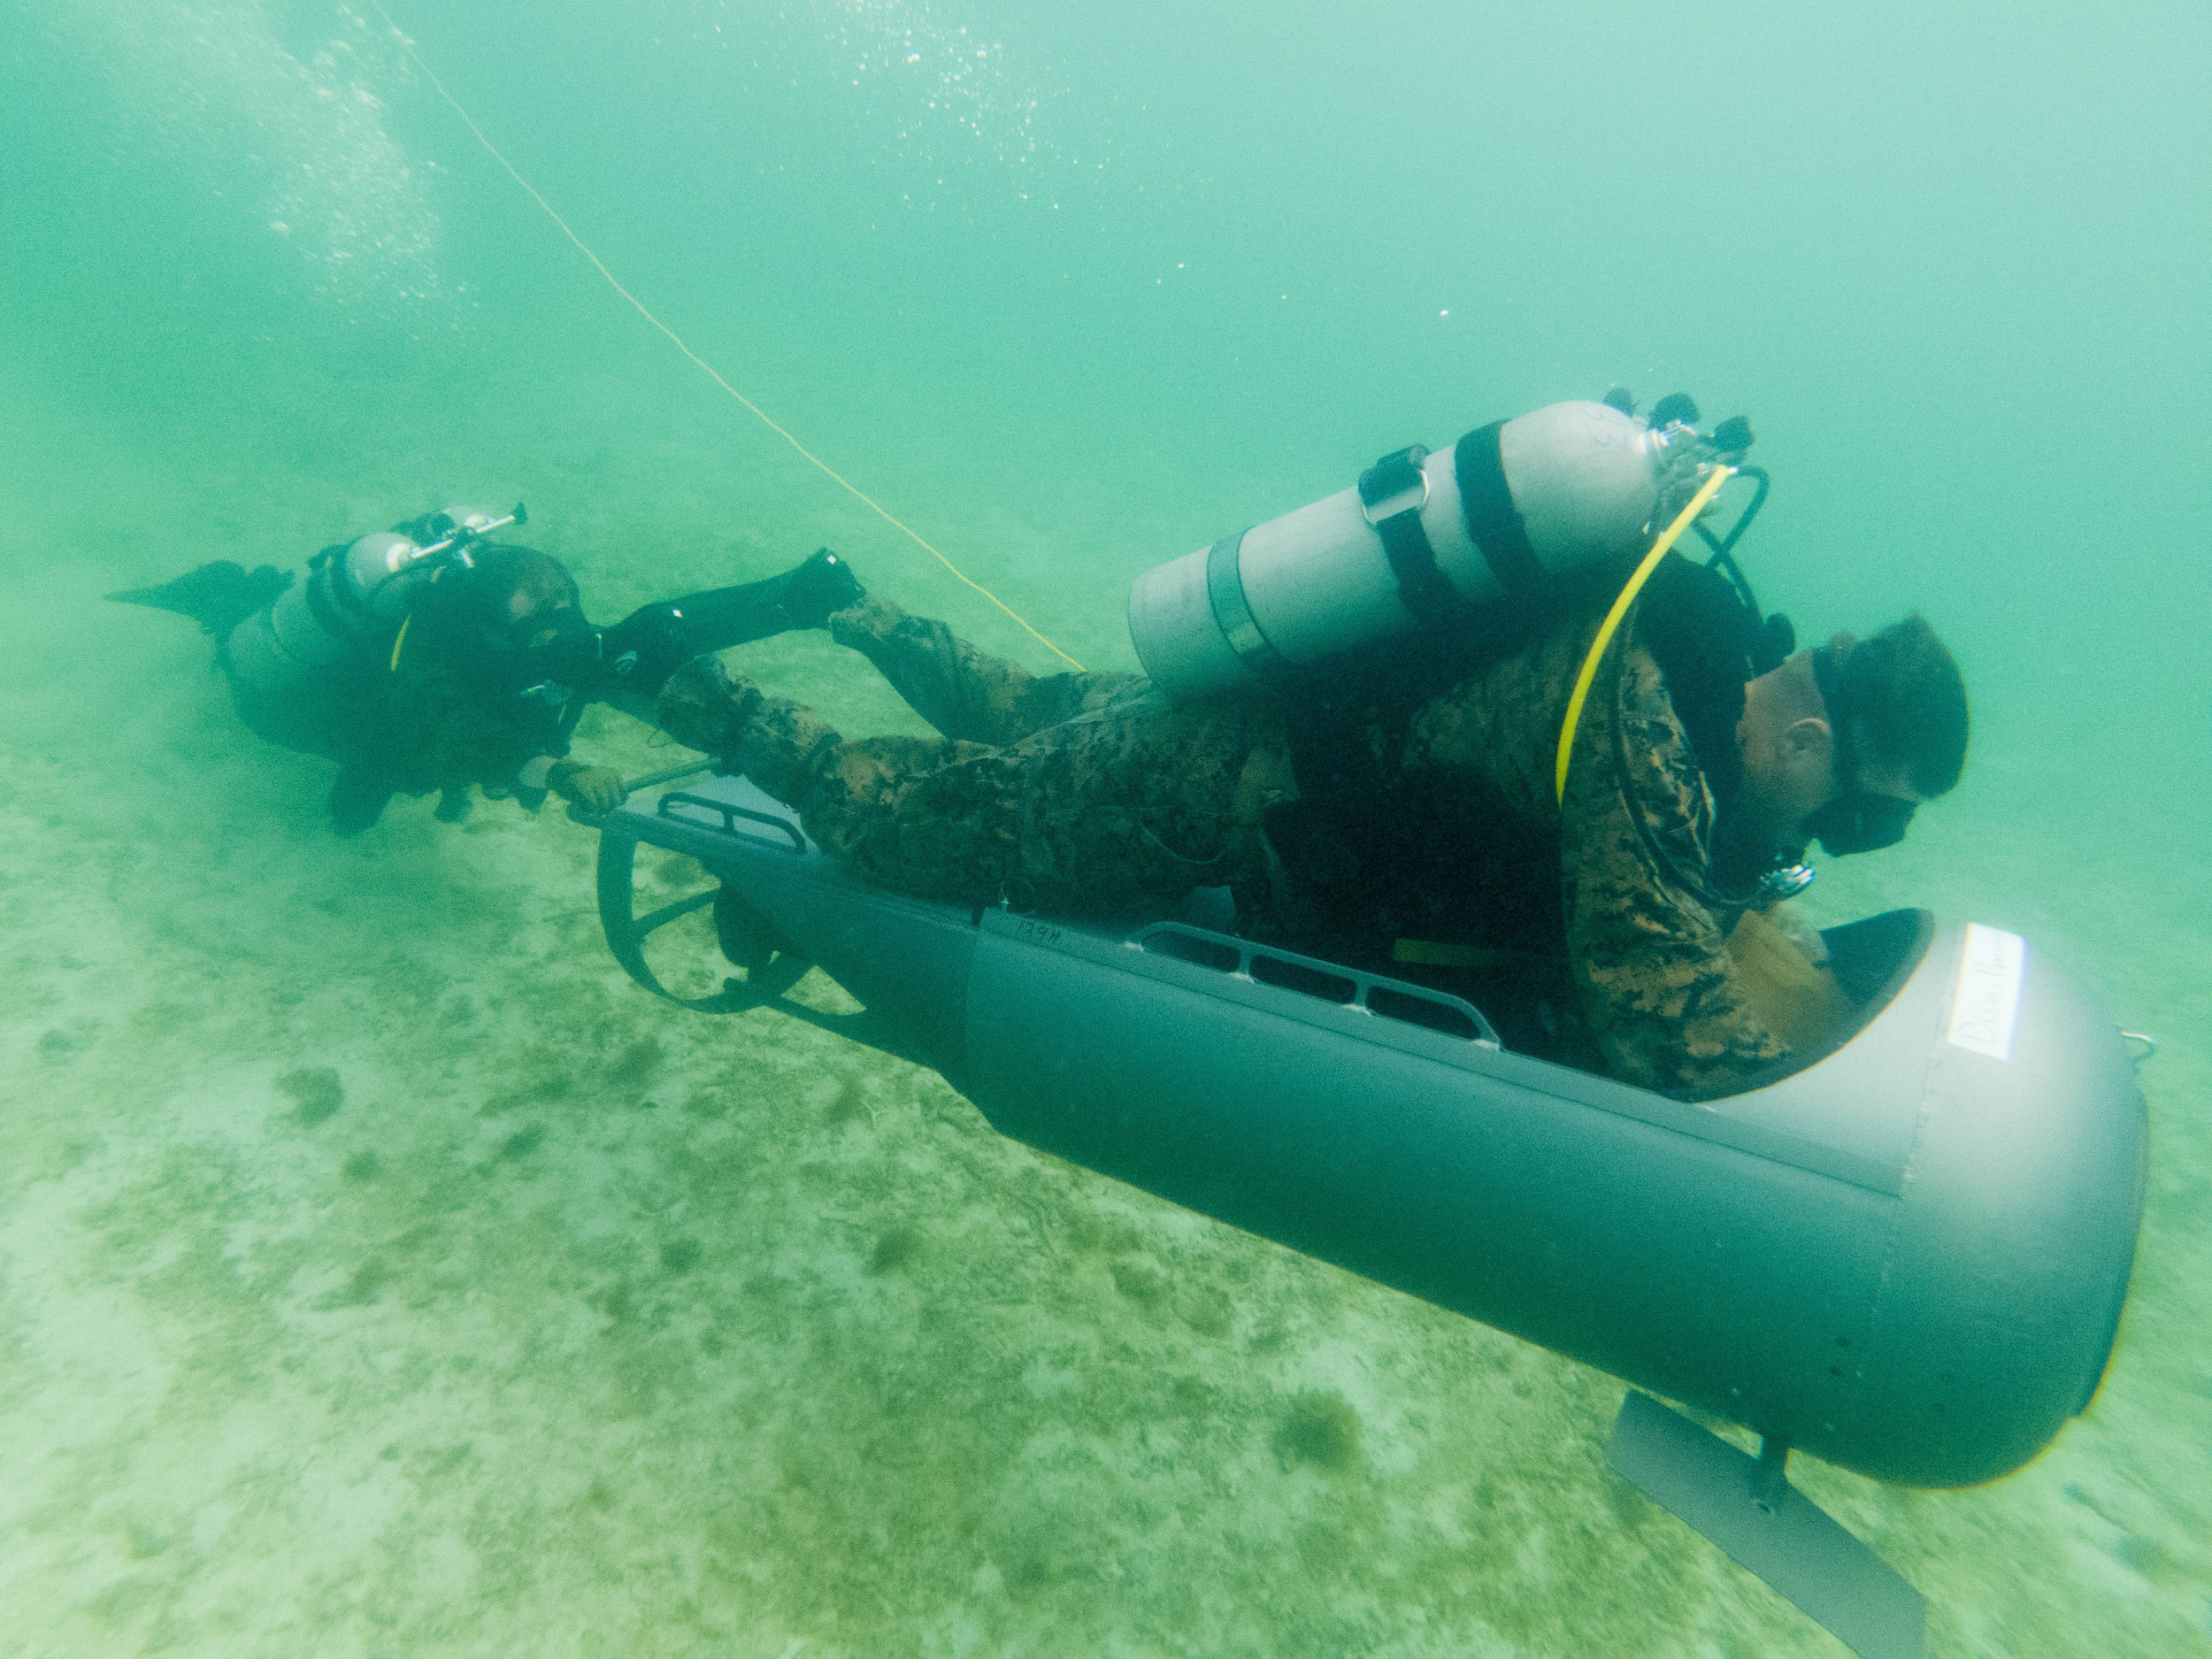 Marines with Force Reconnaissance Company, 3rd Reconnaissance Battalion, 3rd Marine Division, complete an open circuit dive during a Diver Propulsion Device certification course at Camp Schwab, Okinawa, Japan, June 23, 2020. (Lance Cpl. Jackson Dukes/Marine Corps)